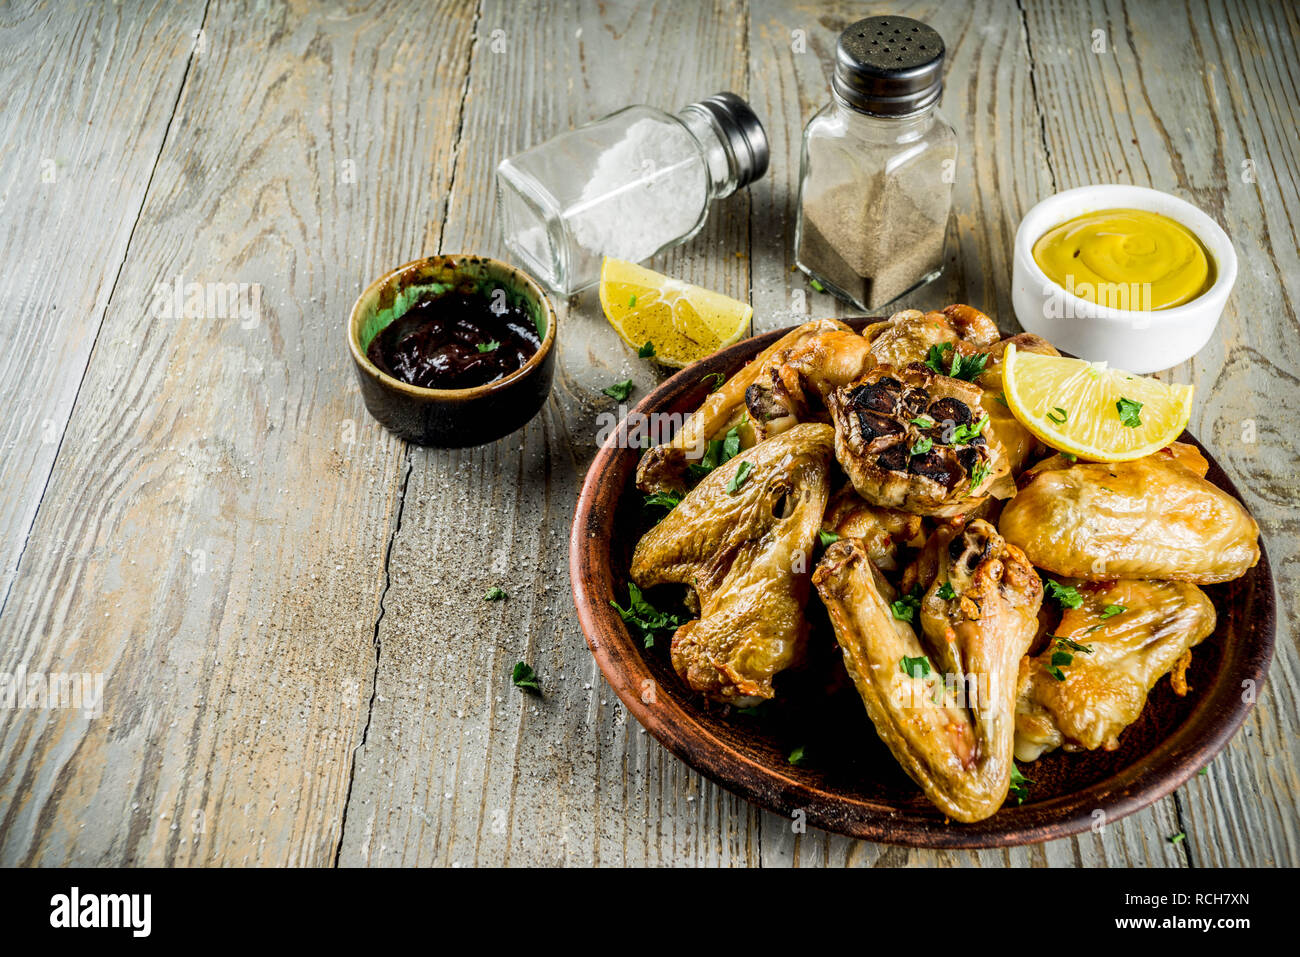 Grilled bbq chicken wings with sauces and spices, wooden background copy space top view Stock Photo